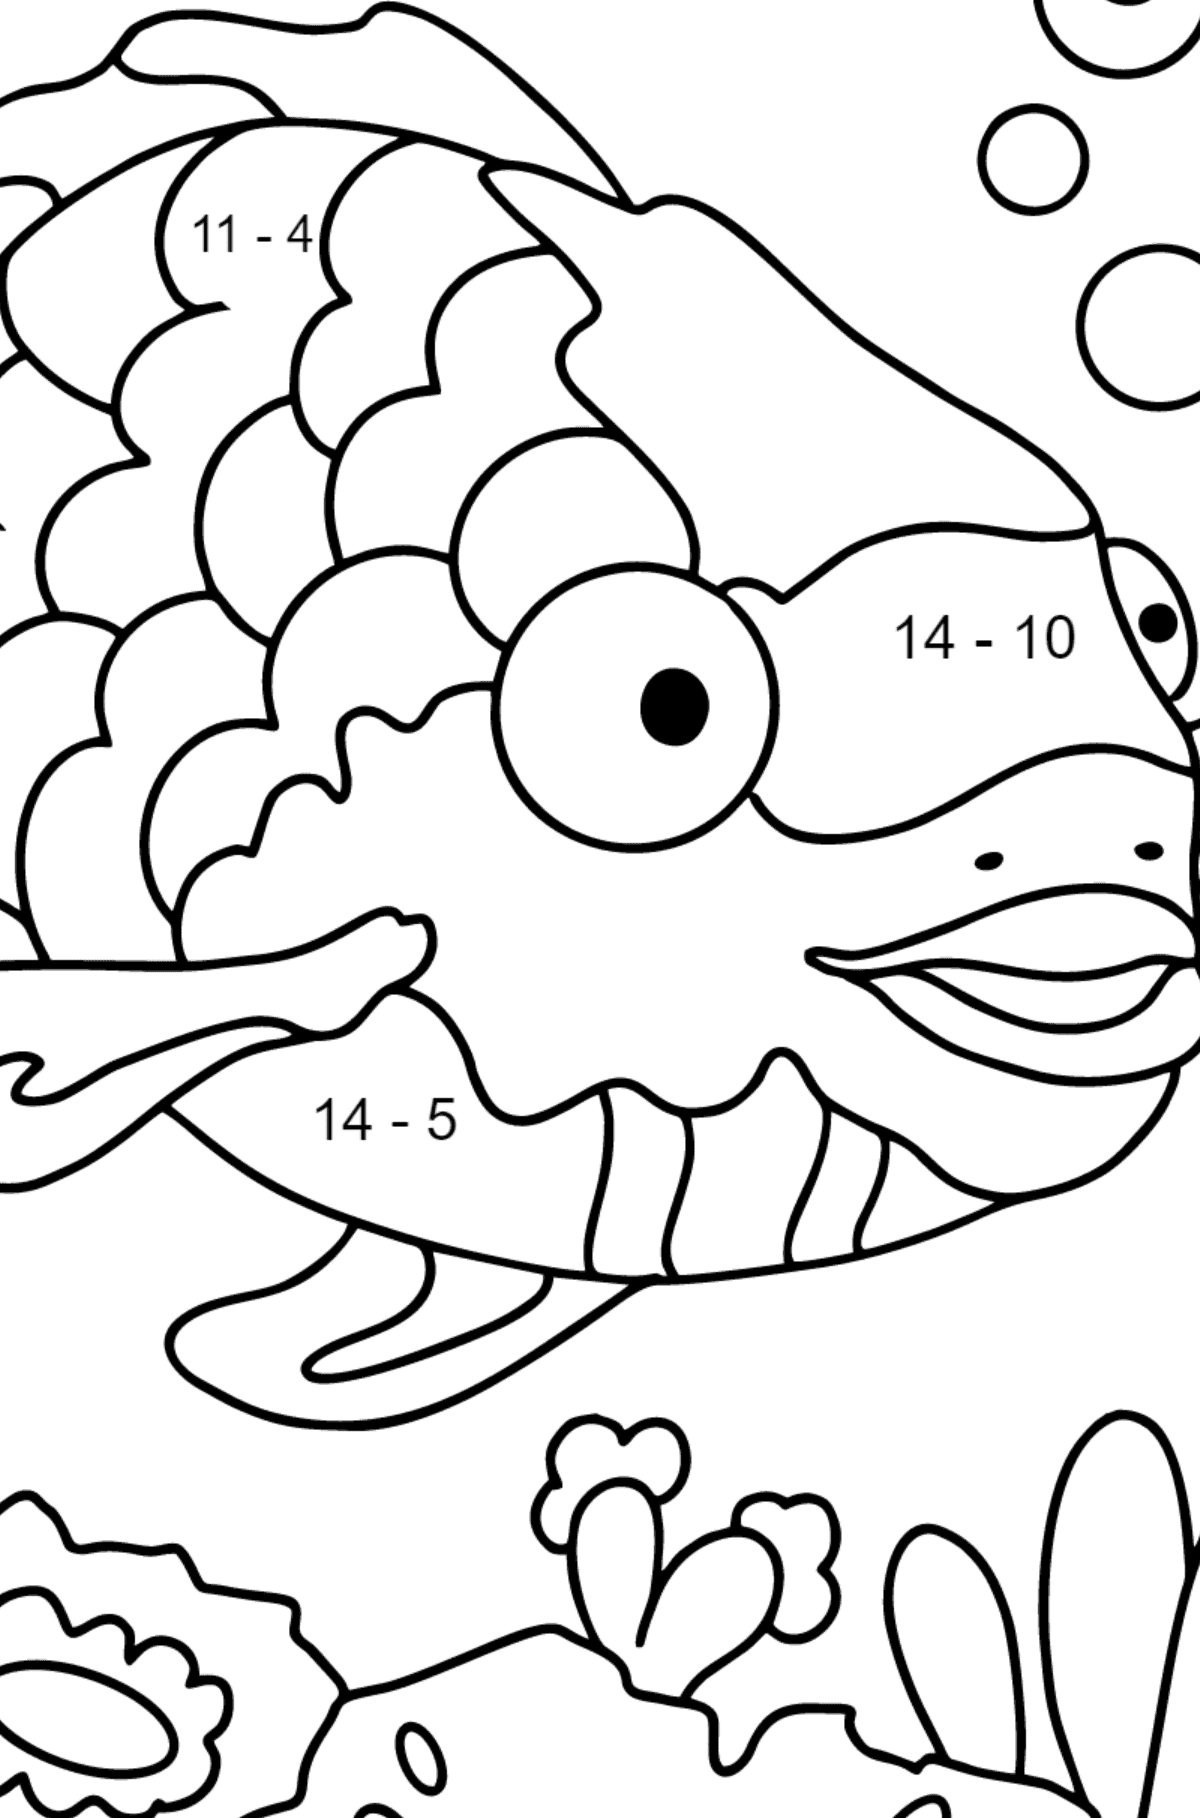 Coloring Page - A Fish with Multicolored Scales - Math Coloring - Subtraction for Children